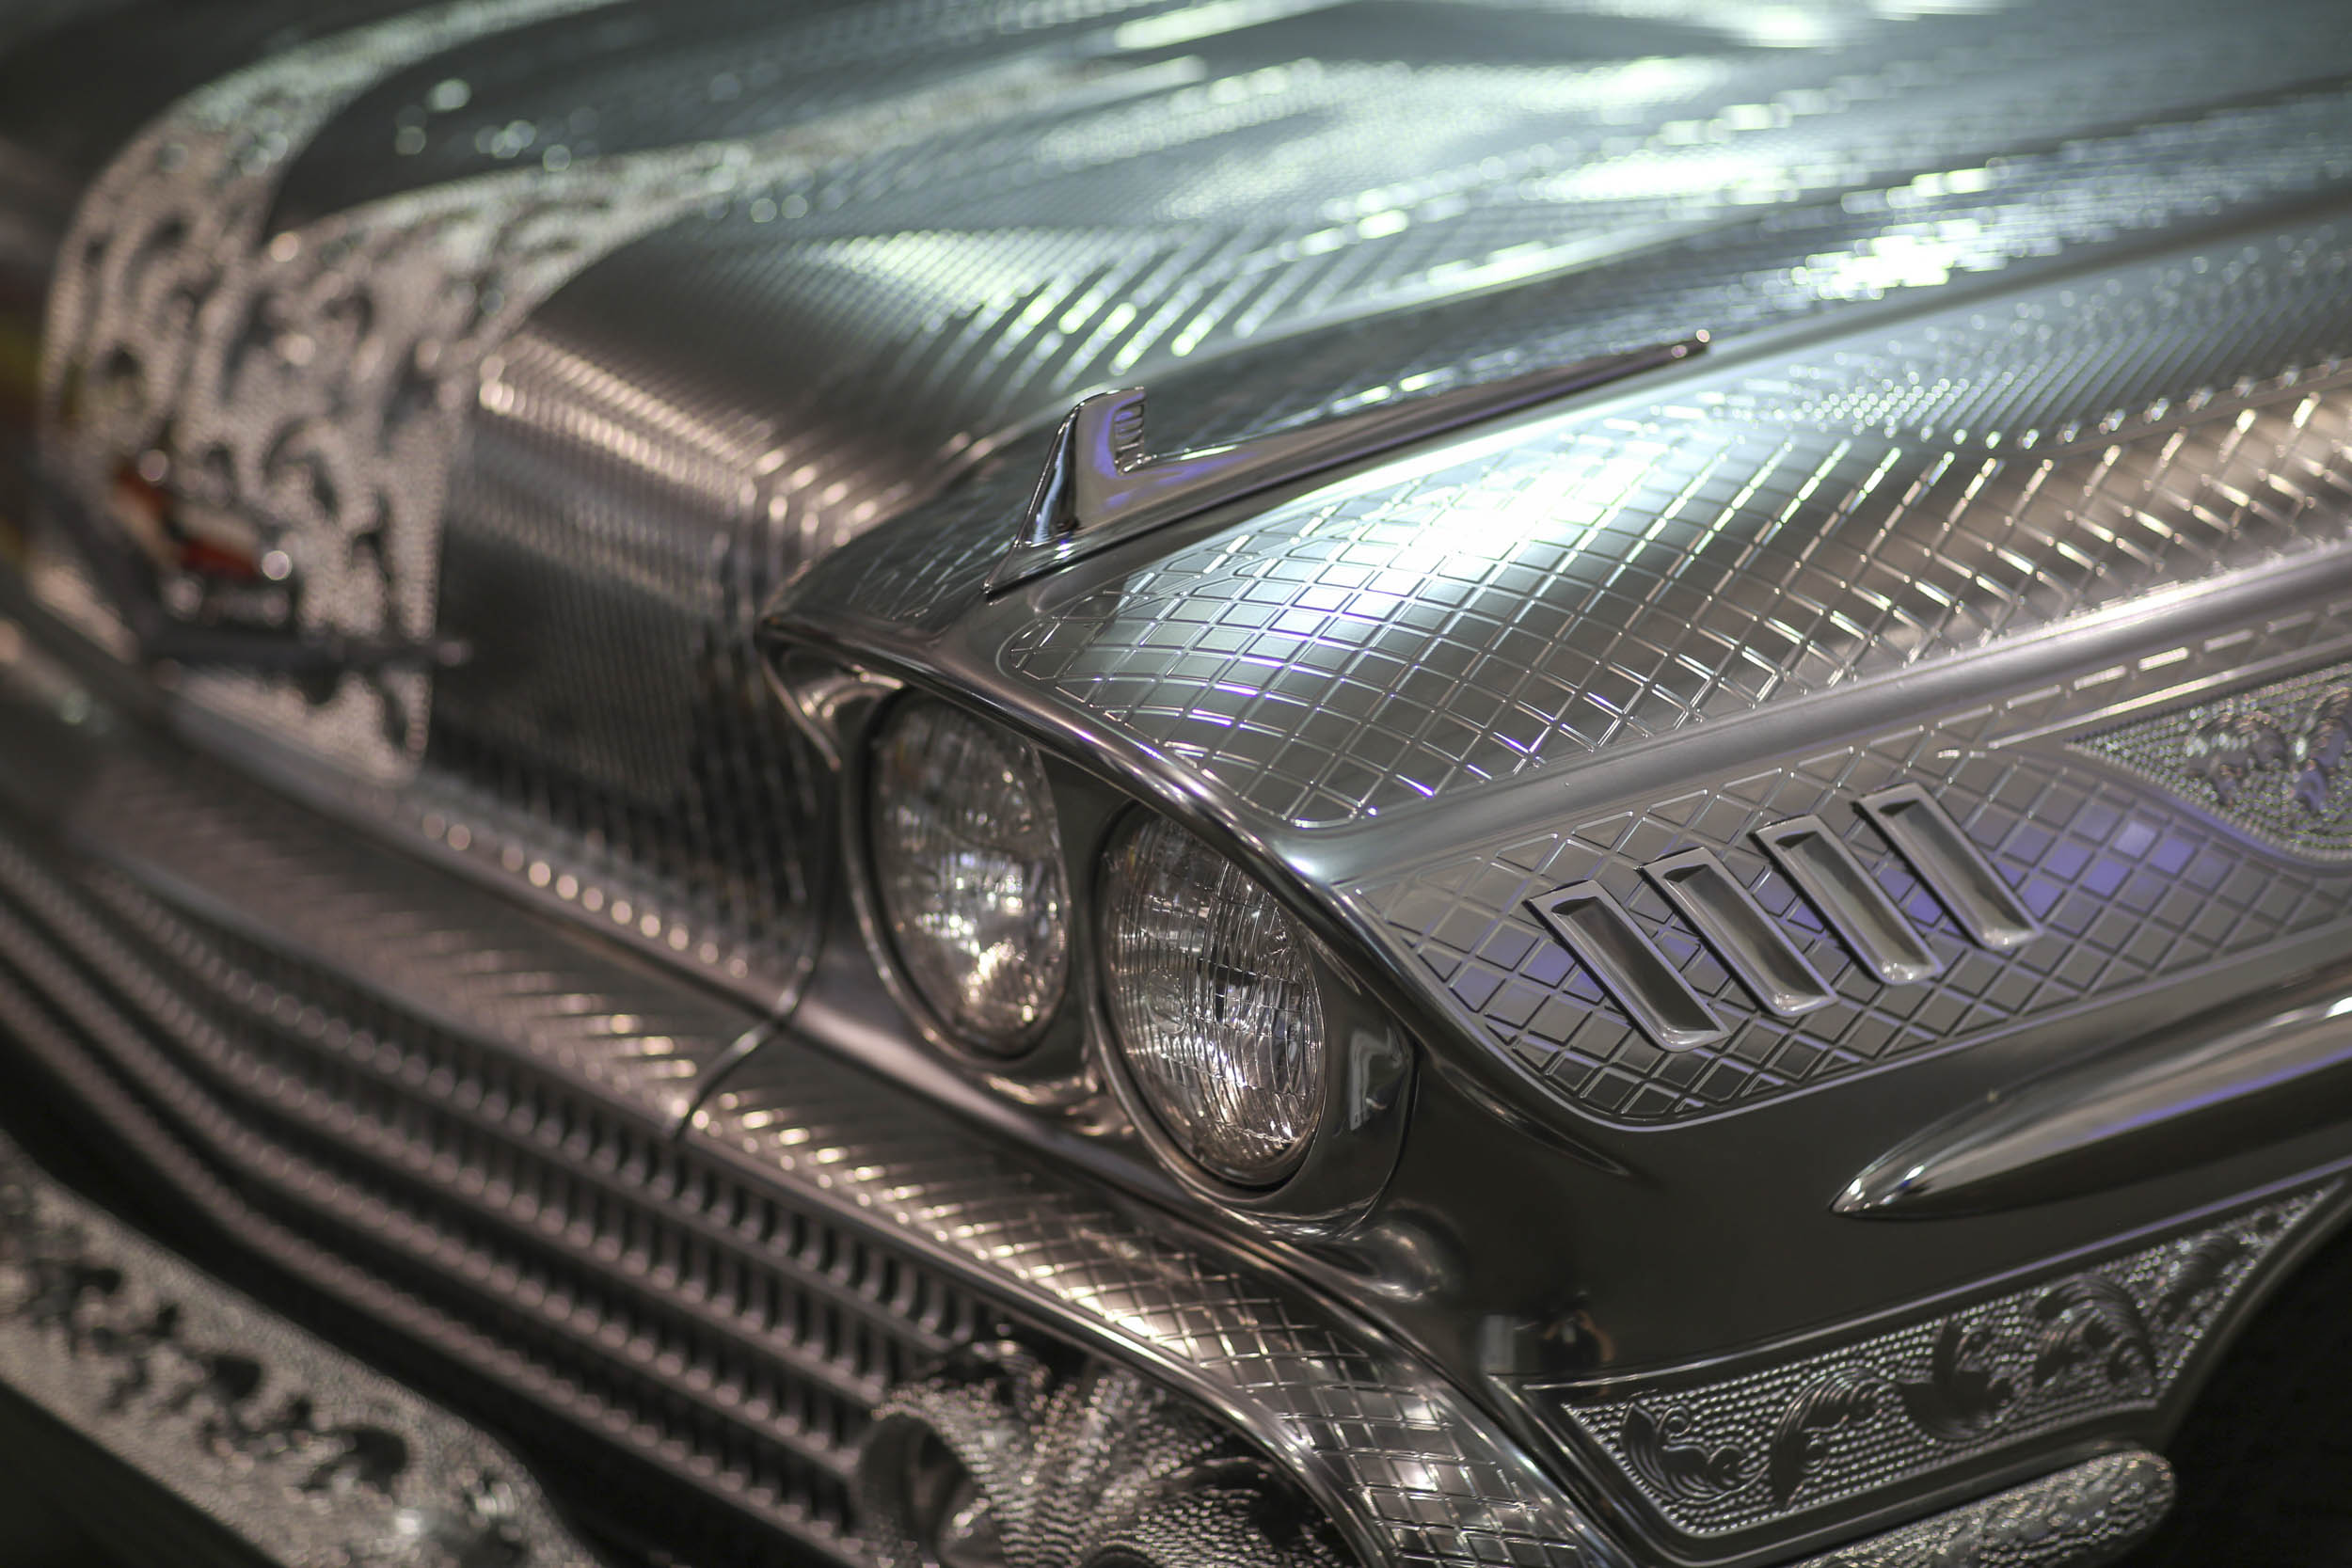 this '58 Impala that looks like it's covered in quilted bare metal is actually painted to provide that illusion.